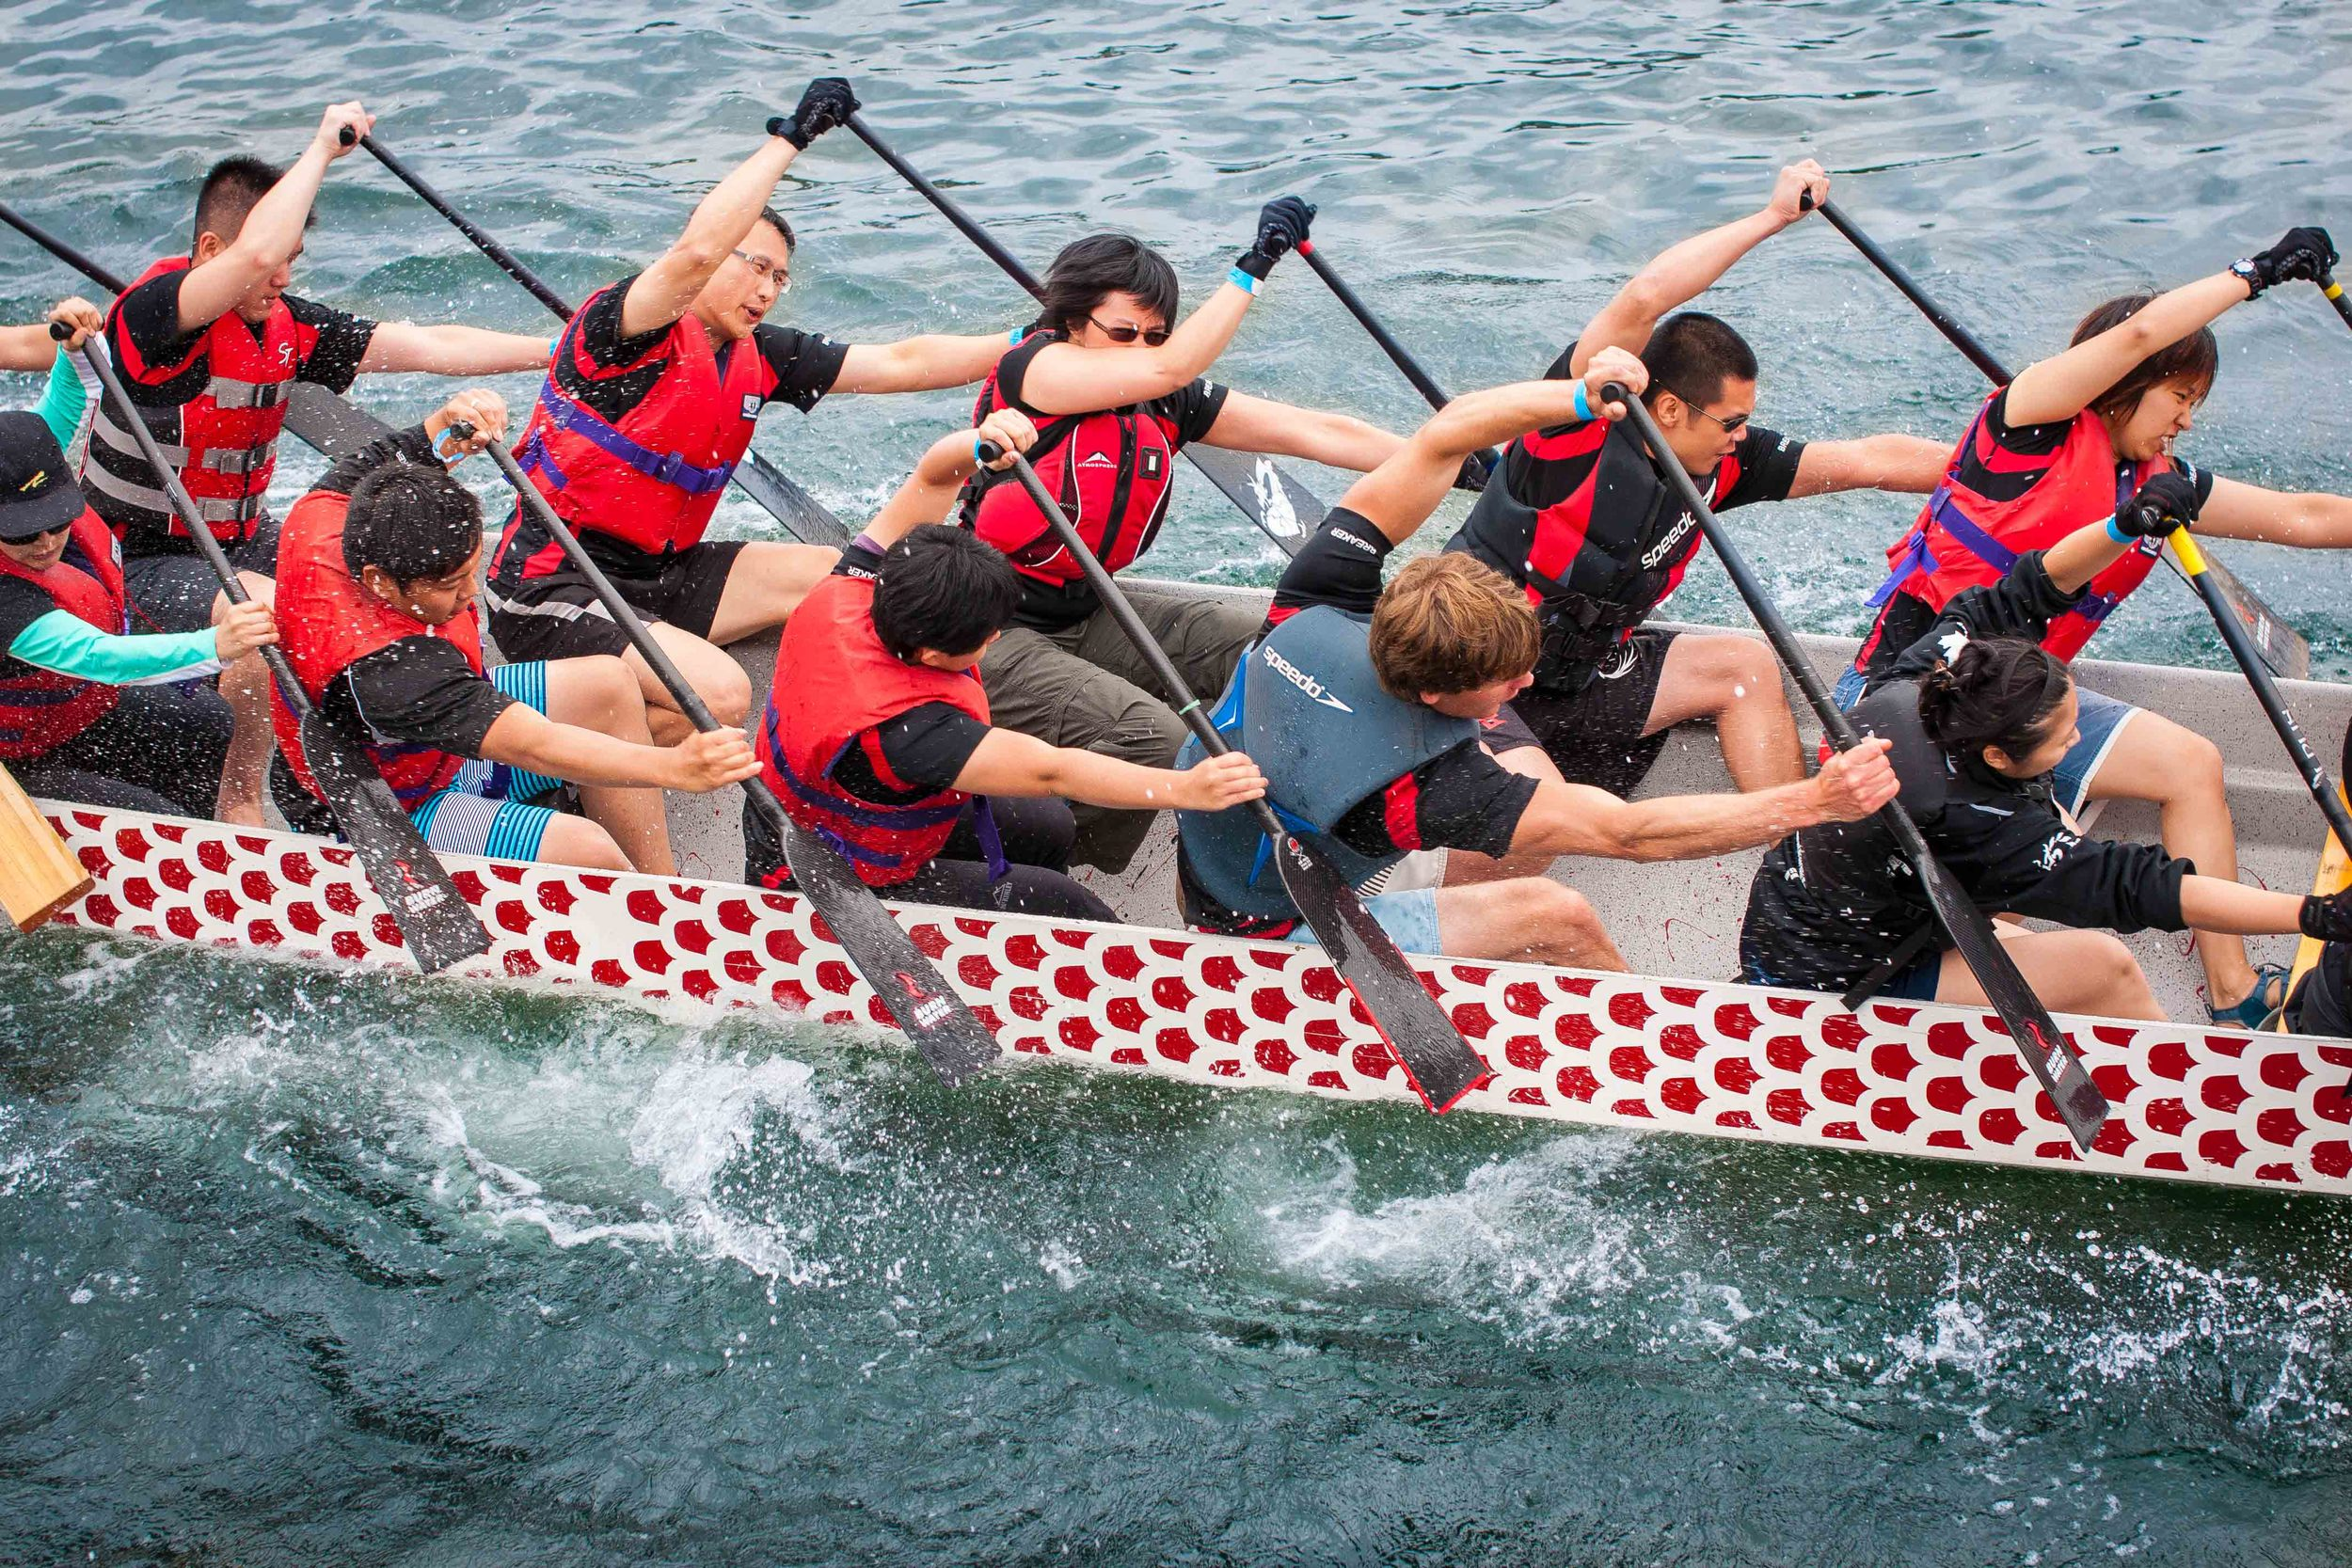 Contra the title of the sport, the boats are neither paddled by dragons, nor made from dragons. Still, a great thing to watch!